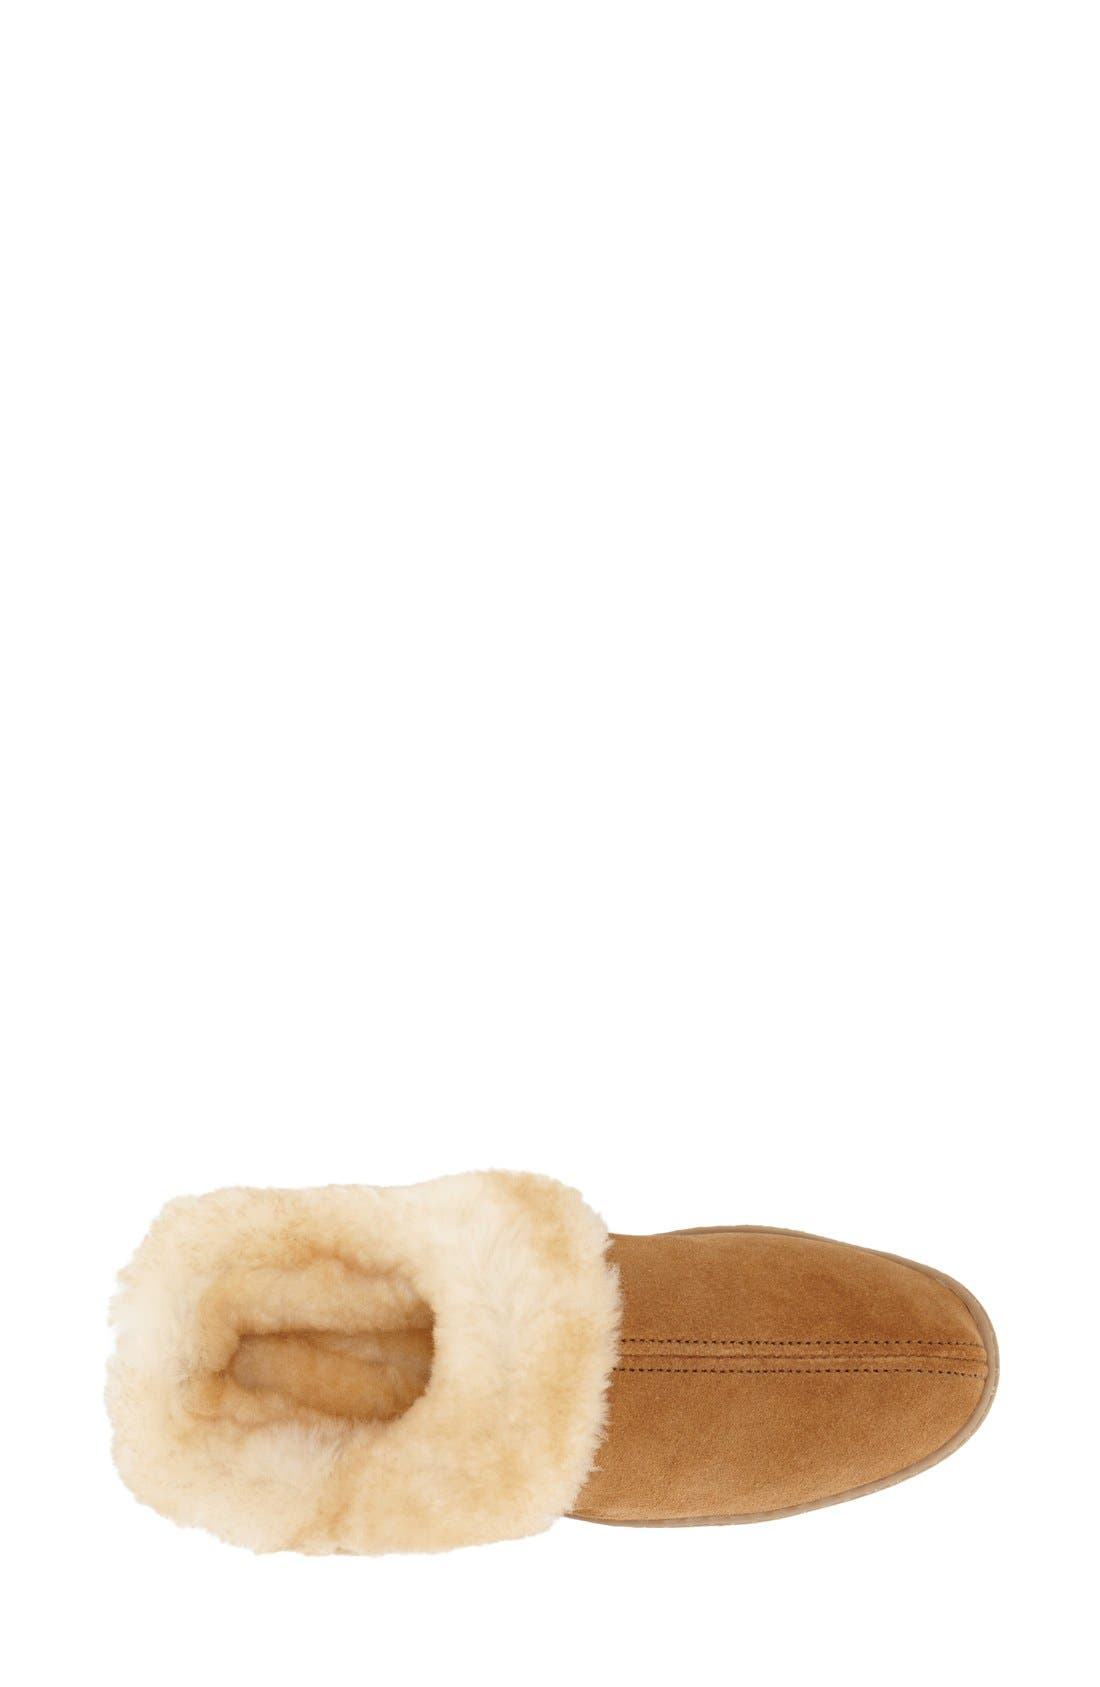 Sheepskin Mule Slipper,                             Alternate thumbnail 3, color,                             Tan Suede